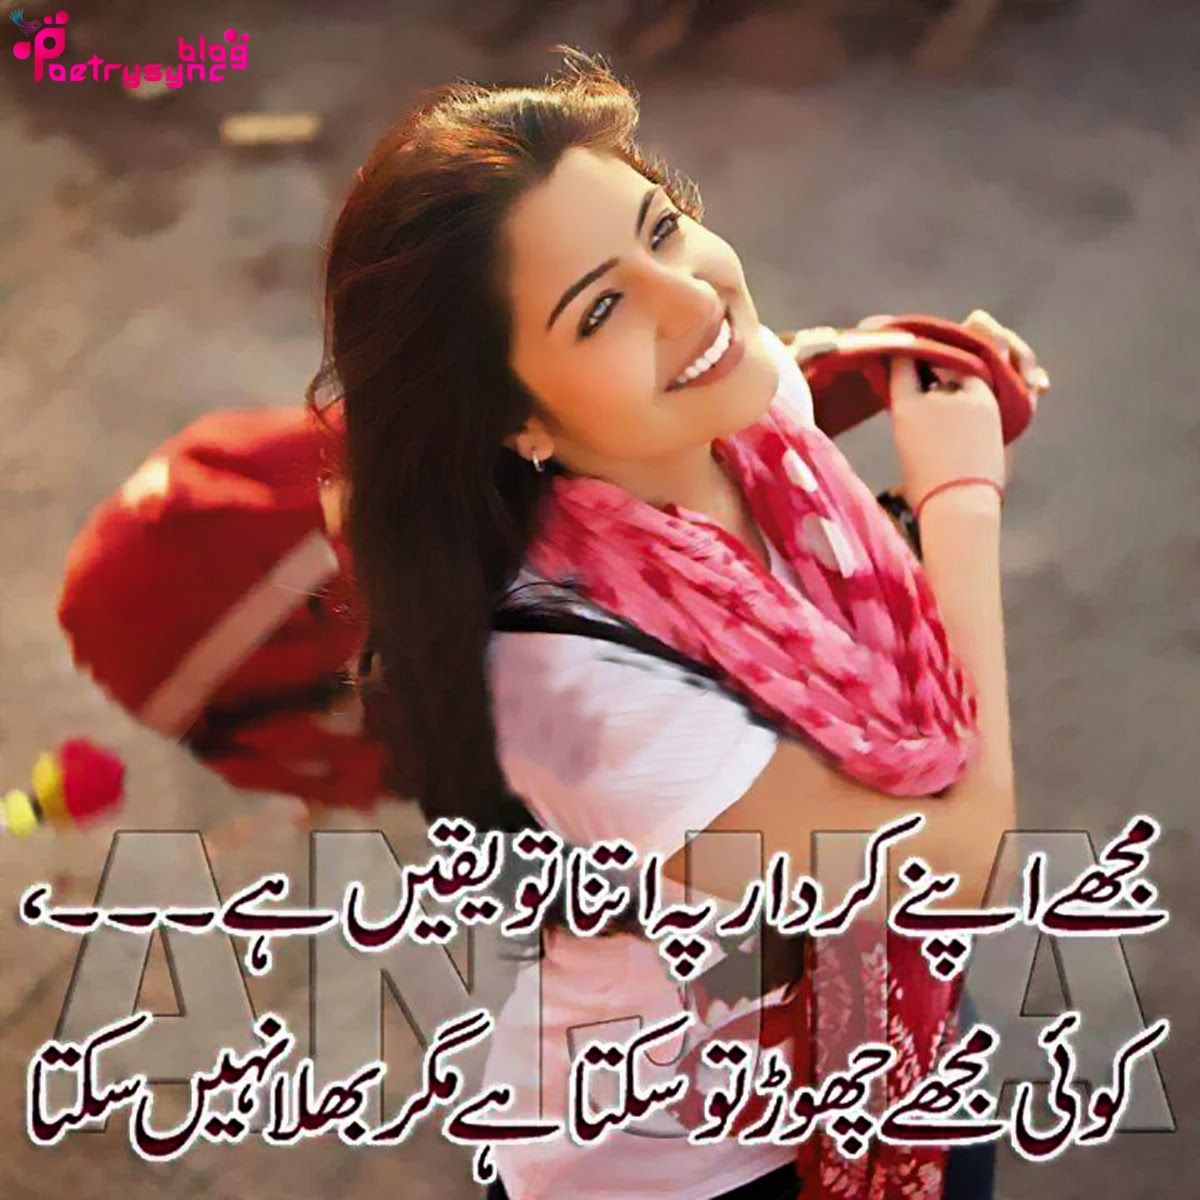 Most Popular Bridal Entrance Songs: Love Romantic Shayari SMS In Urdu With Images Collection